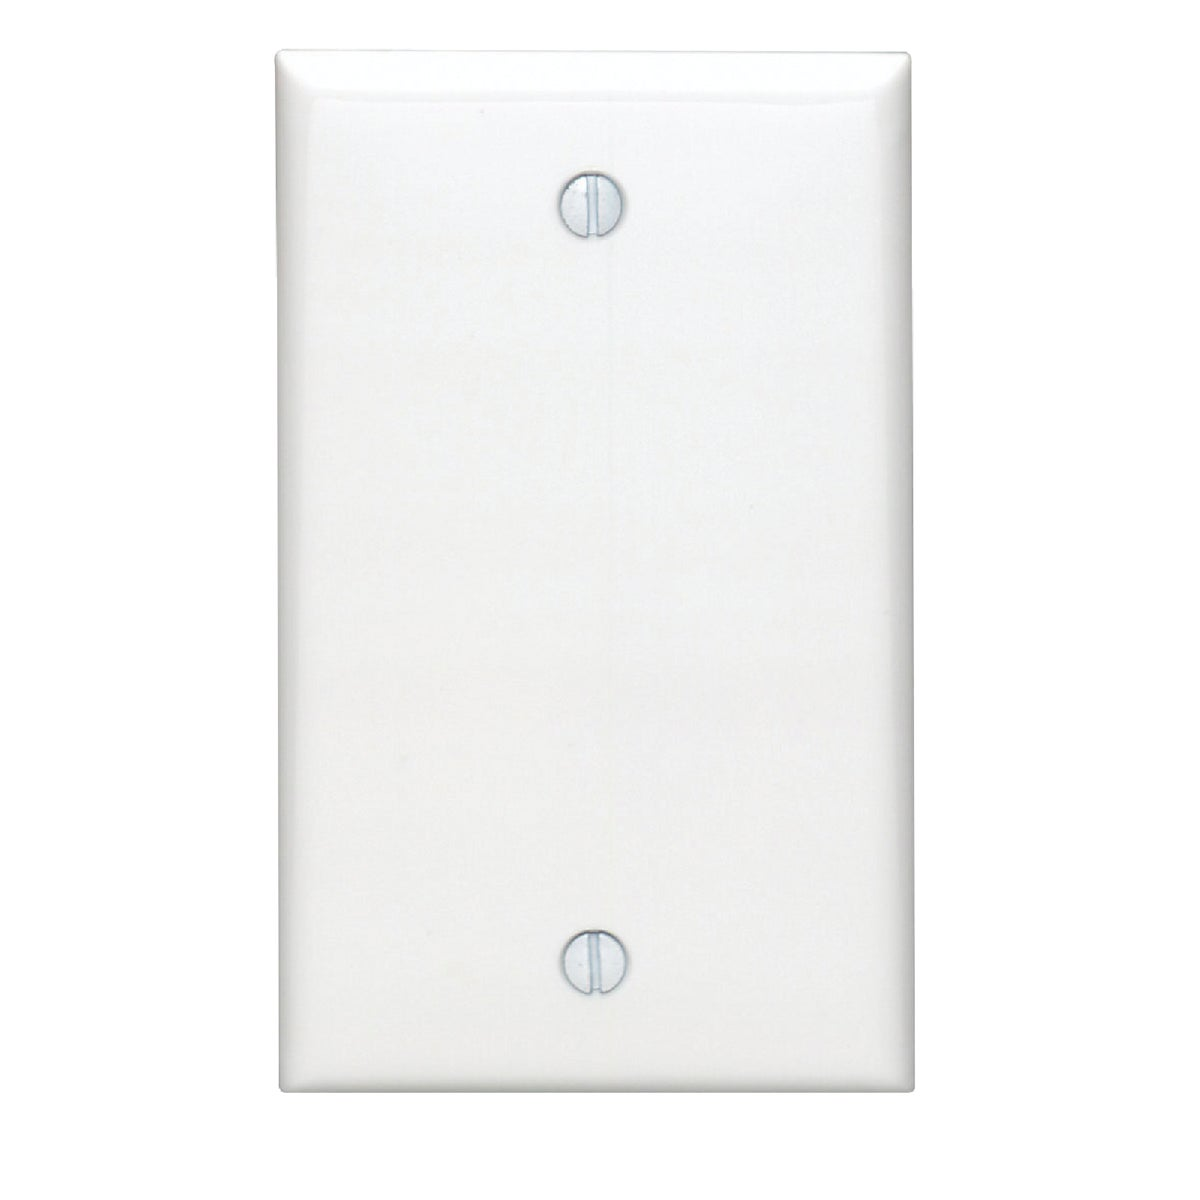 WHT BLANK WALL PLATE - 80714W by Leviton Mfg Co